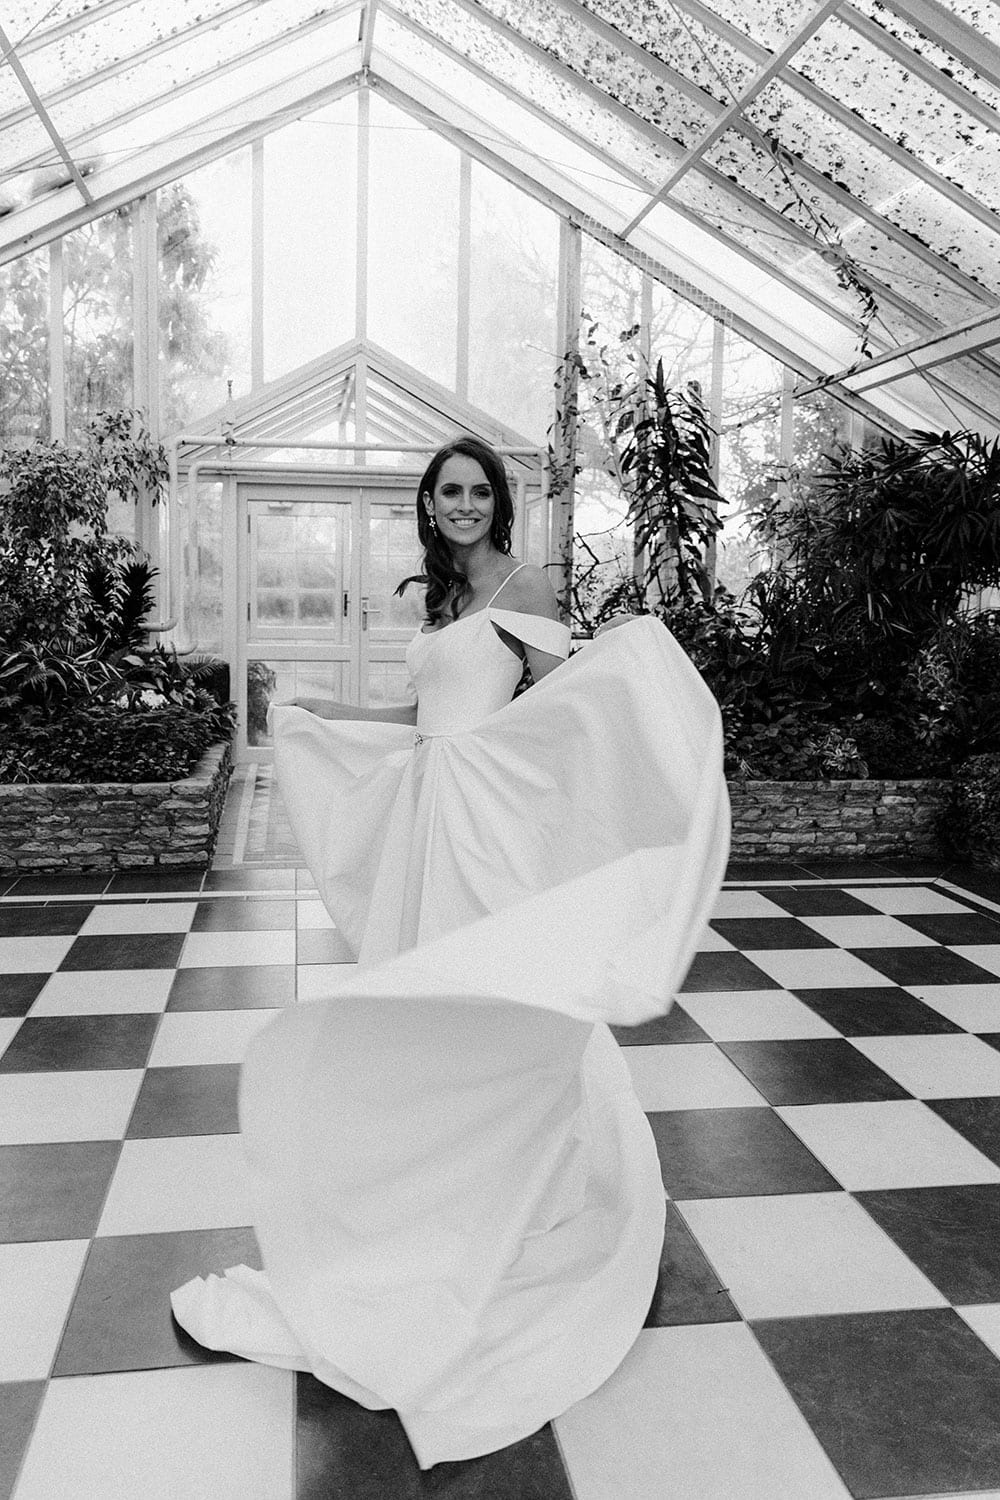 Model wearing Vinka Design Chiara Wedding Dress, a Modern Silk Wedding Gown with Train in a botanical garden greenhouse with train displayed in black and white